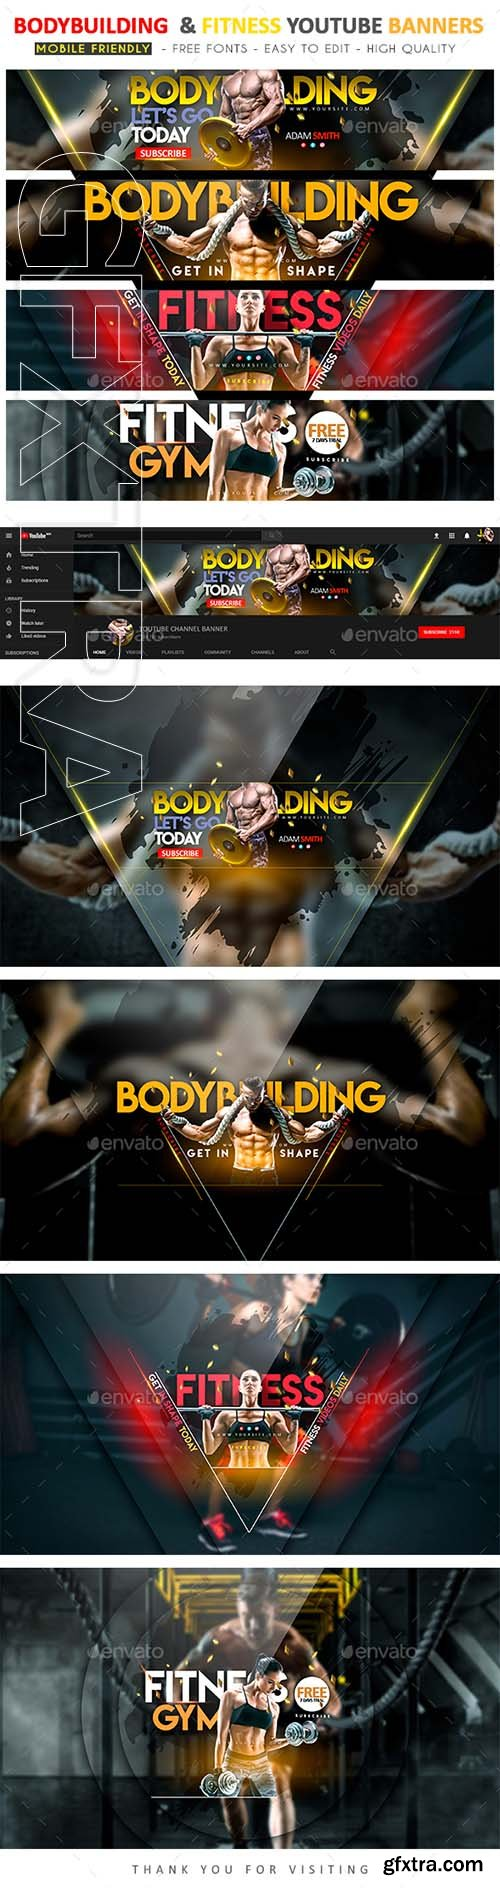 GraphicRiver - Bodybuilding & Fitness YouTube Banner 22175170